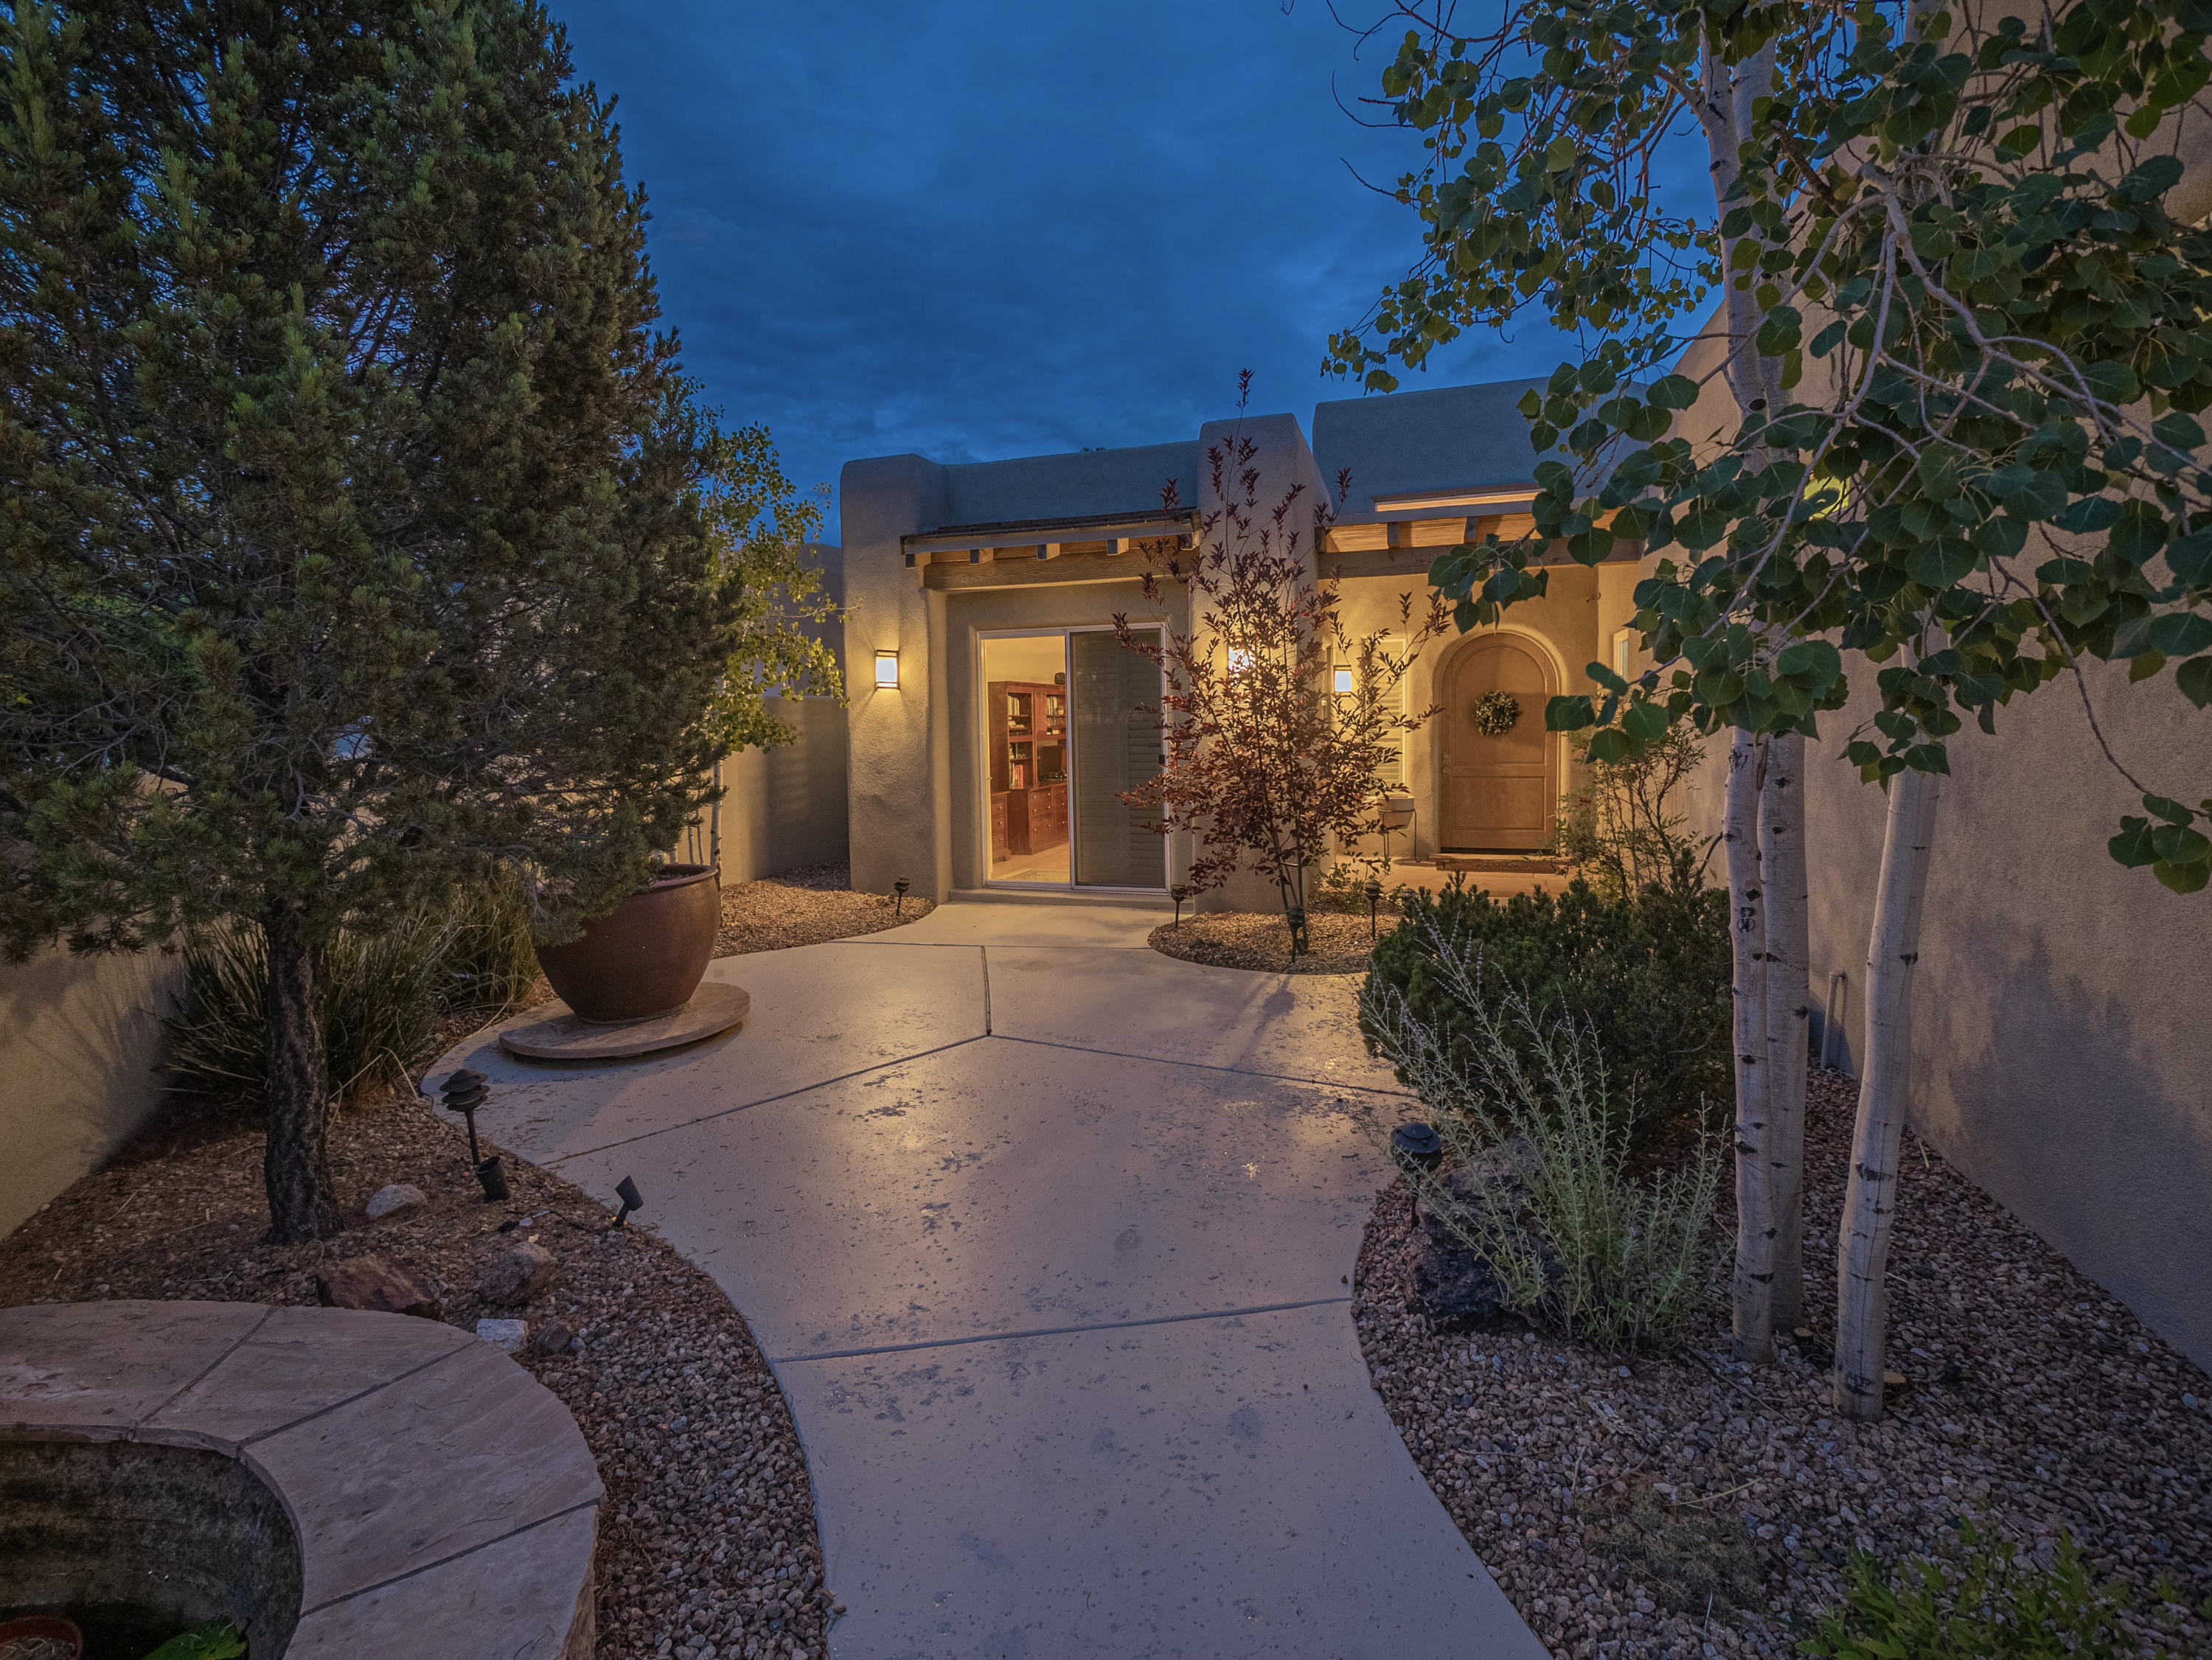 **Open House Sunday 8/1 from 1pm-3pm**HIGH DESERT LIVING AT IT'S FINEST!! Open the gate to the private courtyard with soothing cascading water fountain and enter through the custom hand carved front door. Once you cross over the threshold the WOW FACTOR transcends throughout this impeccably kept home. The original owner wasthe builder himself (Starbright Custom Homes) and you can certainly tell with the extra attention to detail in every room. This 3-bedroom single level Contemporary Southwest style home offers incredible features to include a stacked stone waterfall upon entry, large great room with GORGEOUS MOUNTAINVIEWS and beeswax fireplace, absolutely amazing kitchen with cherry wood cabinets and floating drawers.